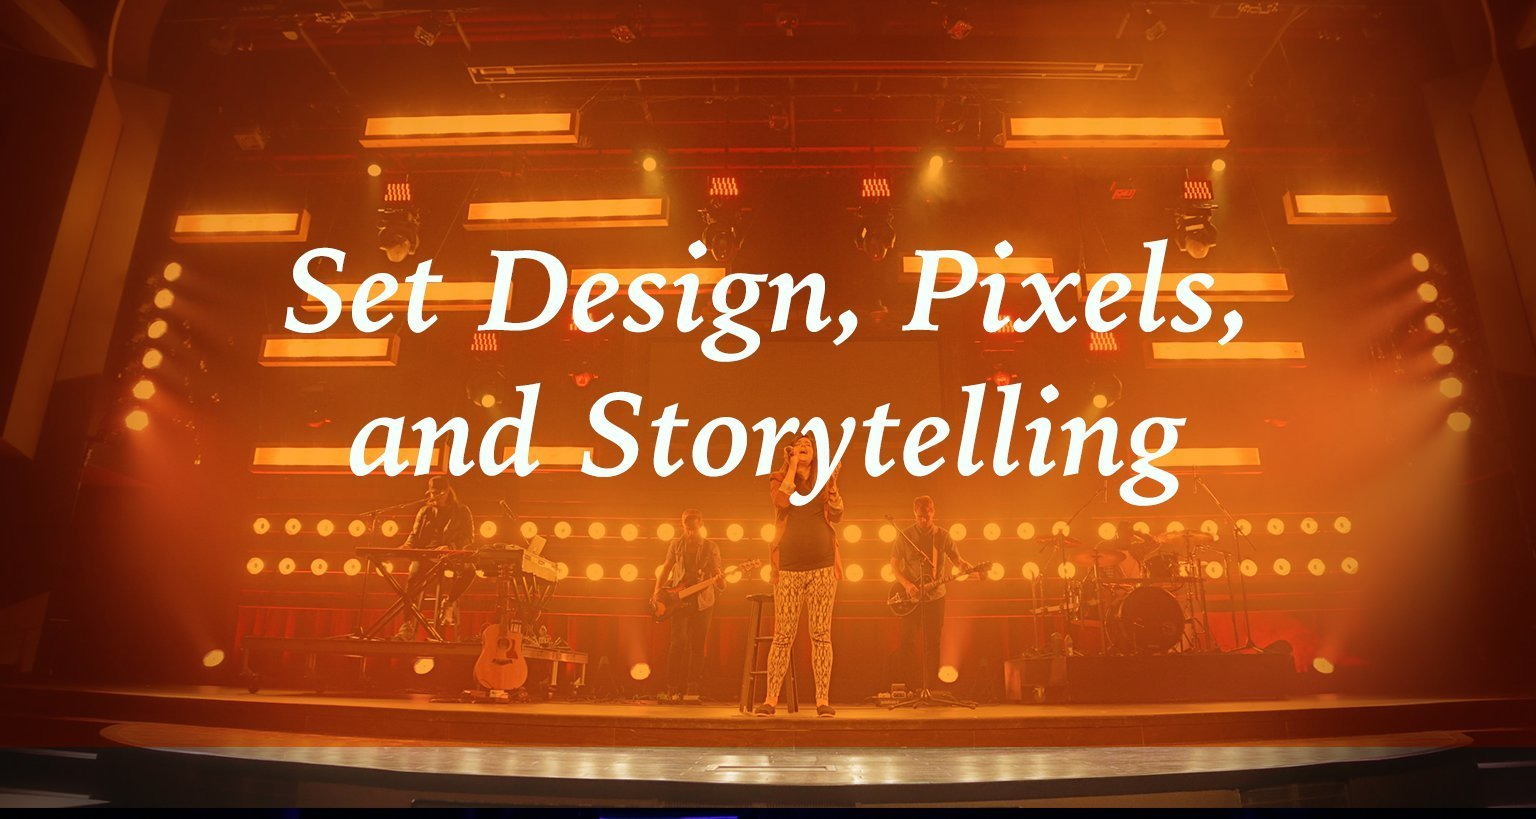 SALT: Set Design, Pixels, and Storytelling